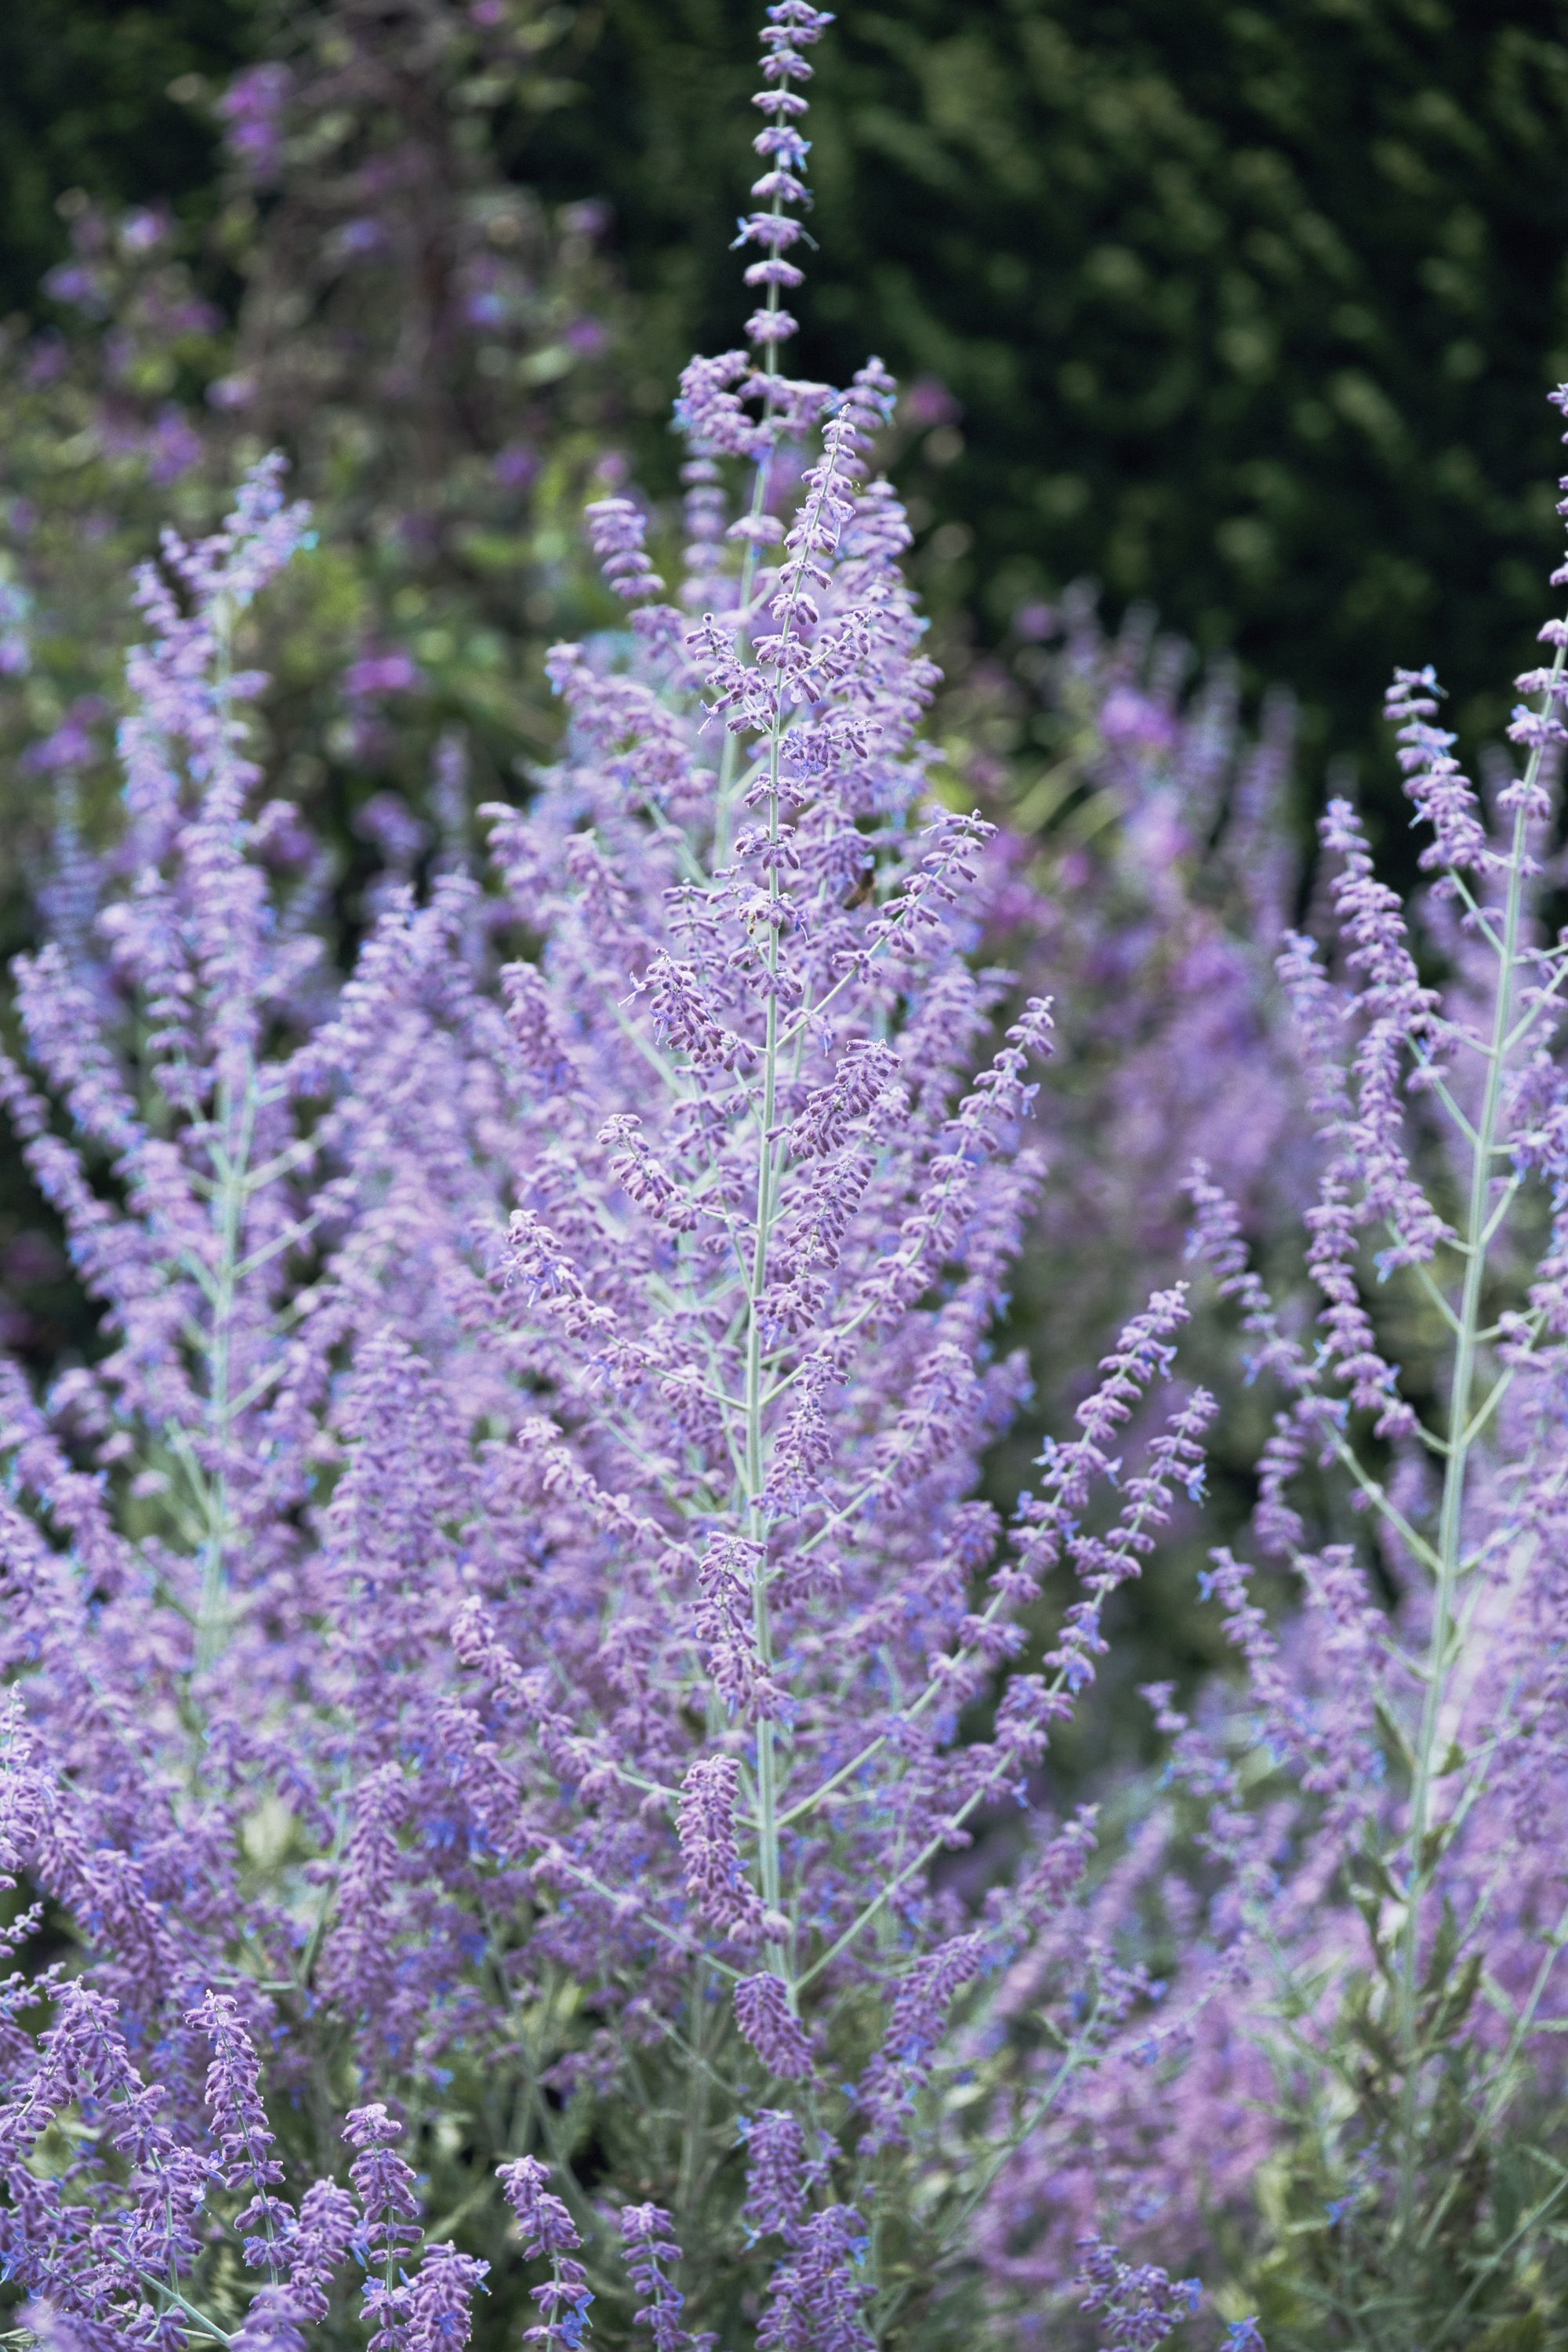 Russian Sage - A member of the mint family, Russian sage